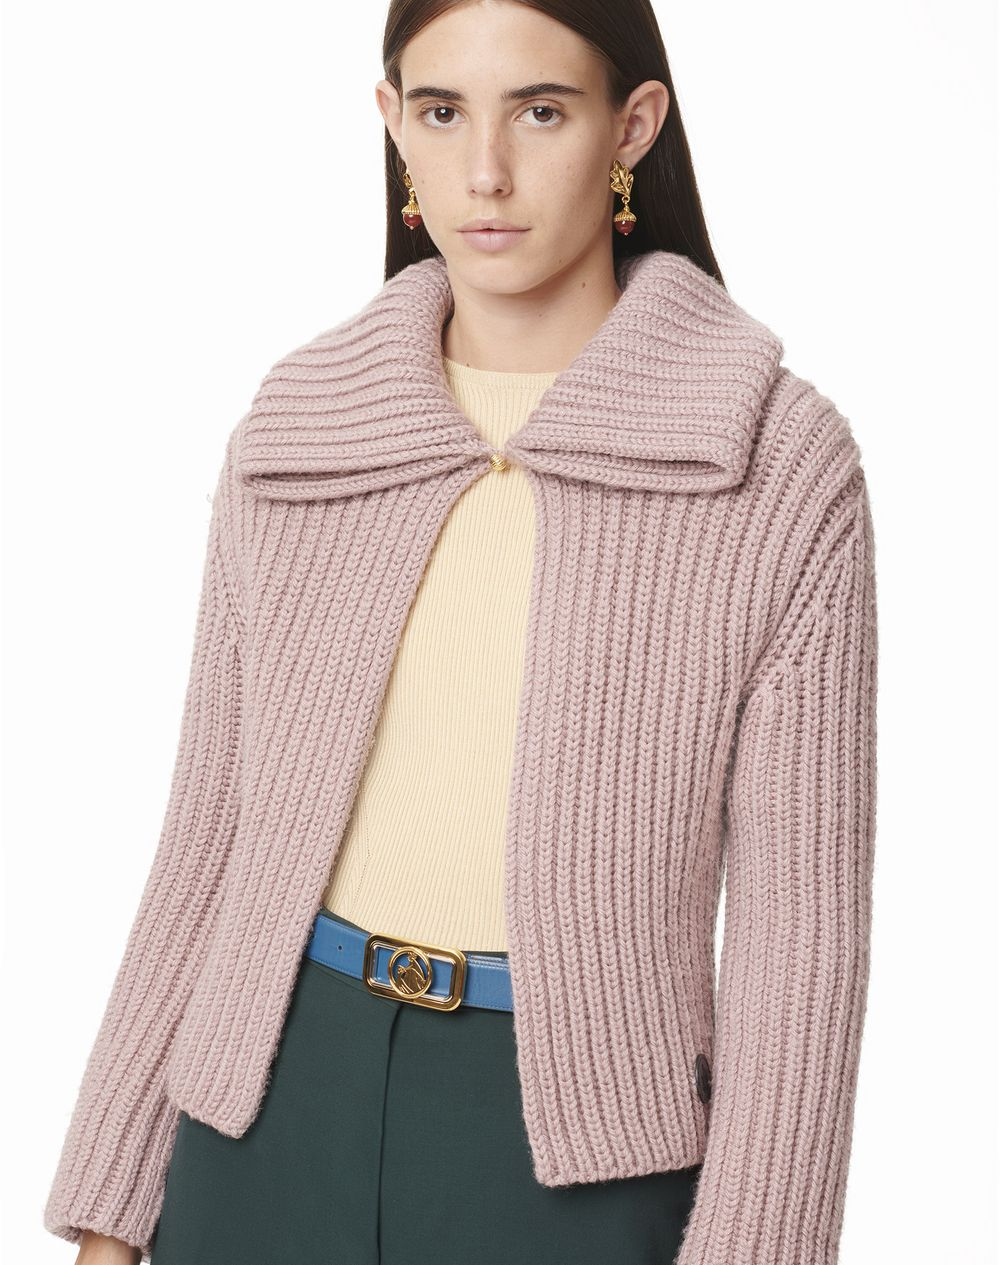 CROPPED COLLARED CARDIGAN - Lanvin